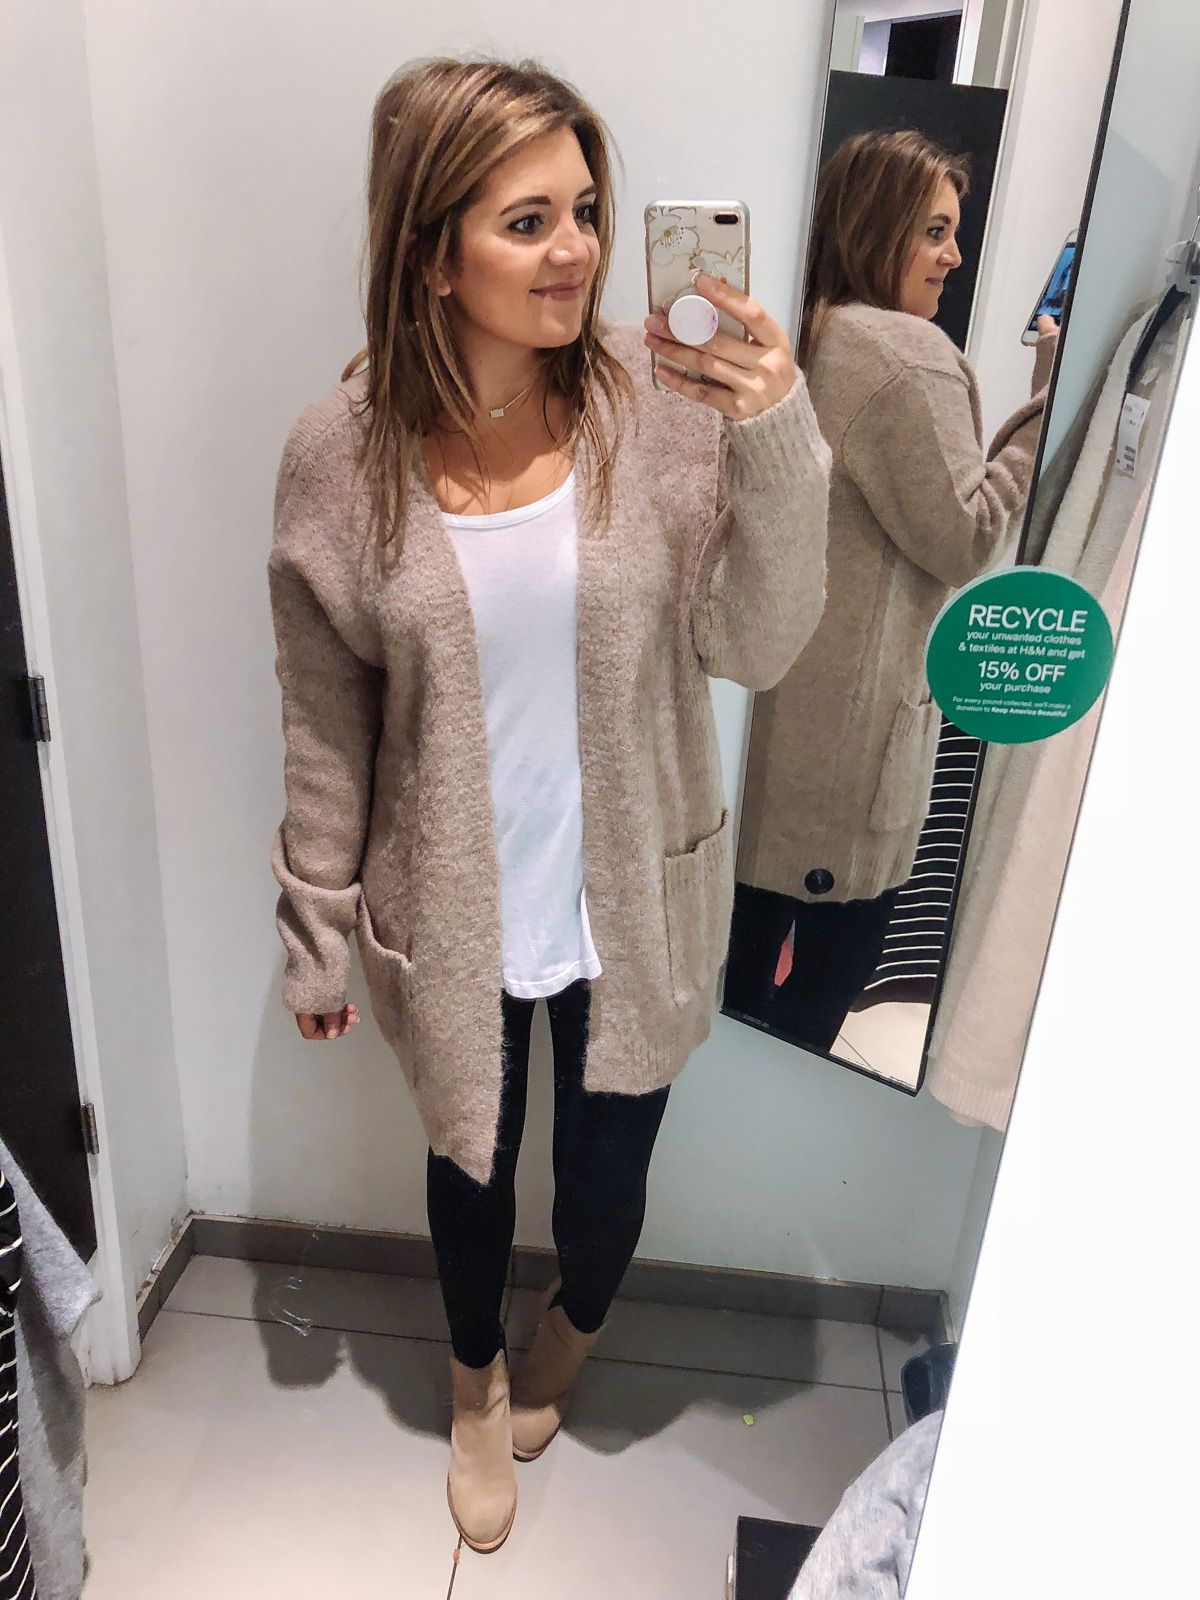 best long cardigan for leggings outfits | See reviews of 15 ...